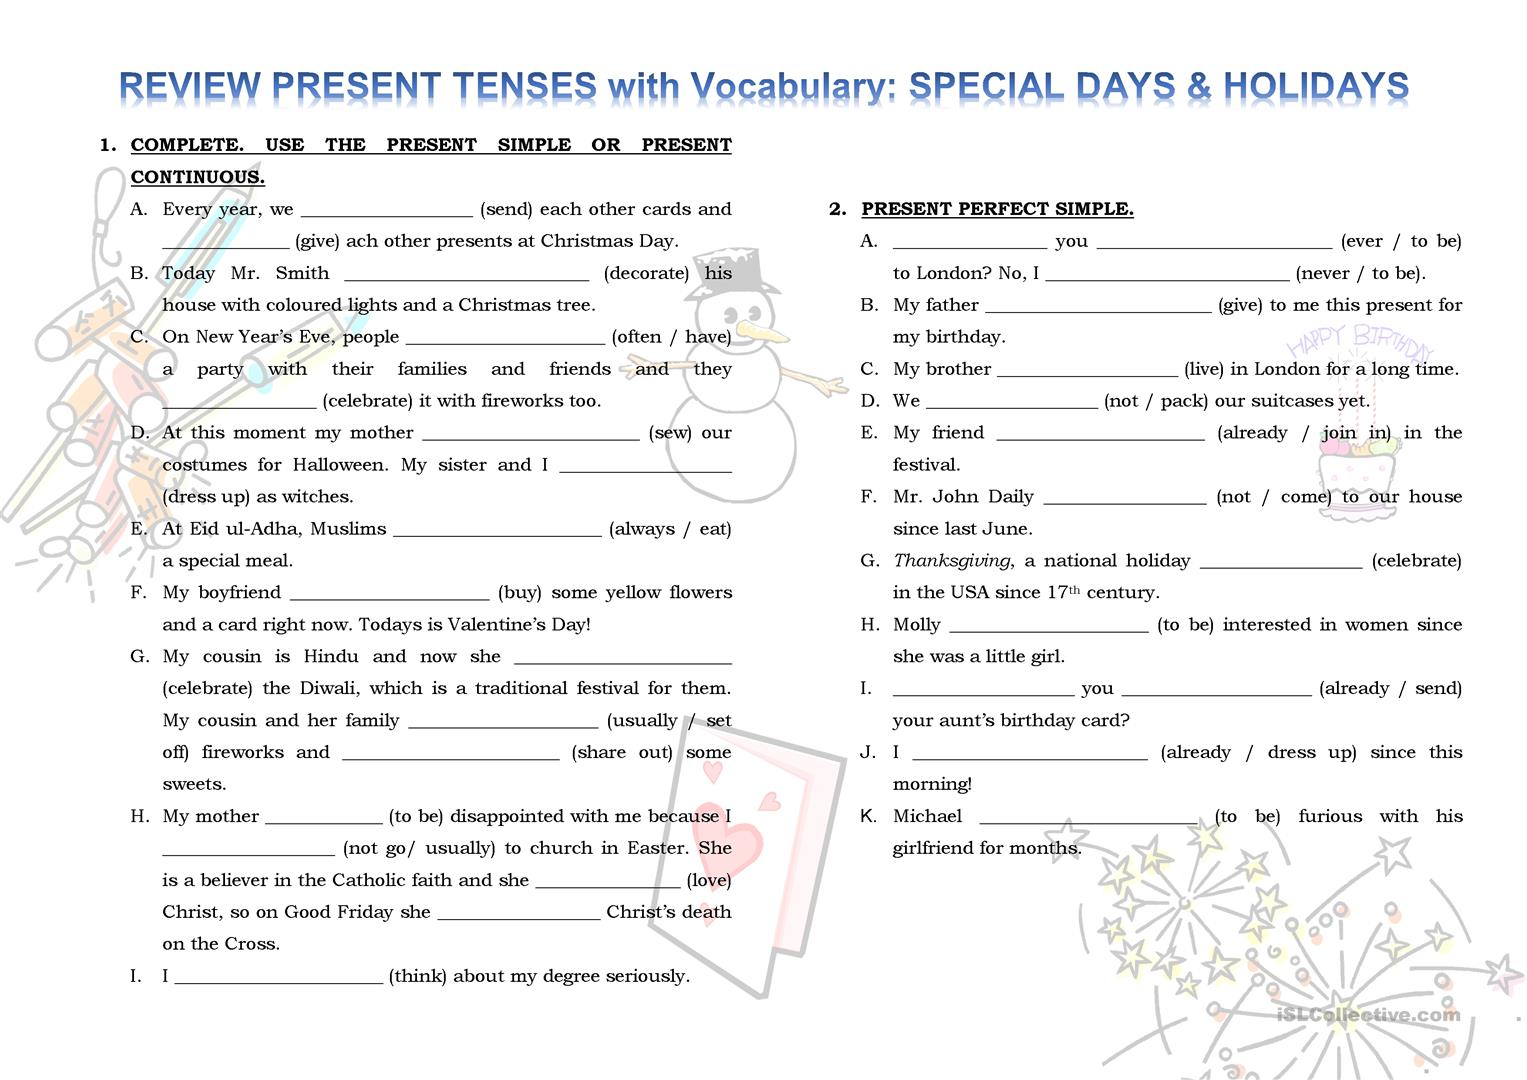 Review Present Tenses